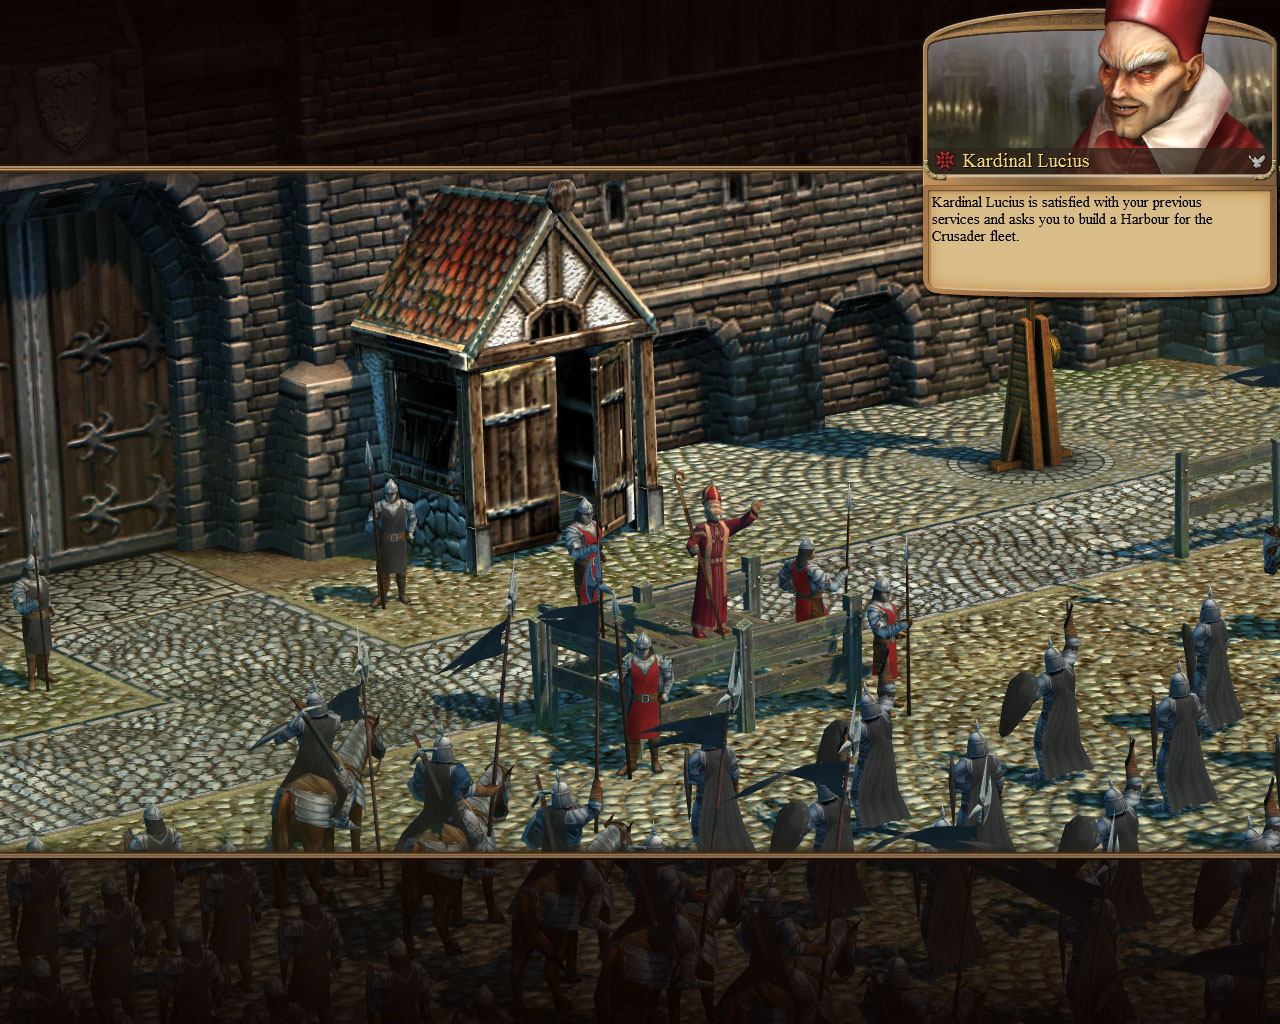 Image anno 1404 campaign chapter3 startcutscene 01g anno 1404 anno 1404 campaign chapter3 startcutscene 01g gumiabroncs Image collections